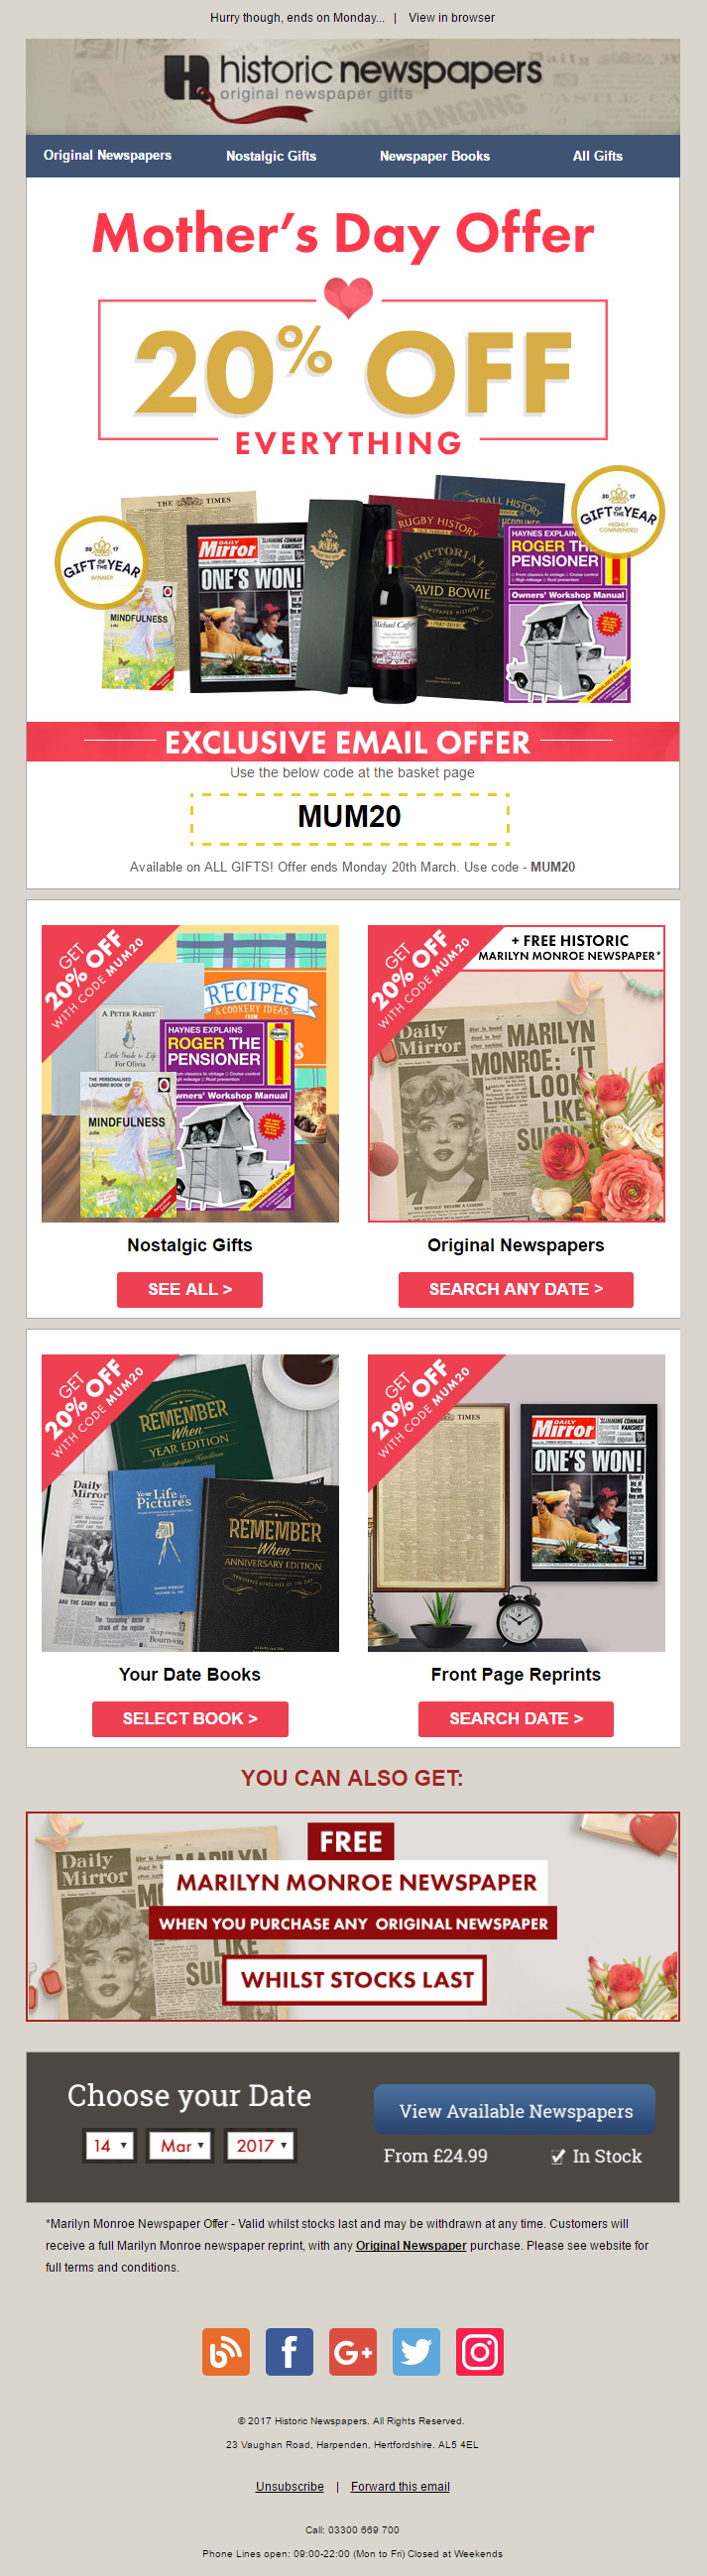 mother s day 20 off offer email with coupon code from historic mother s day 20 off offer email with coupon code from historic newspapers emailmarketing